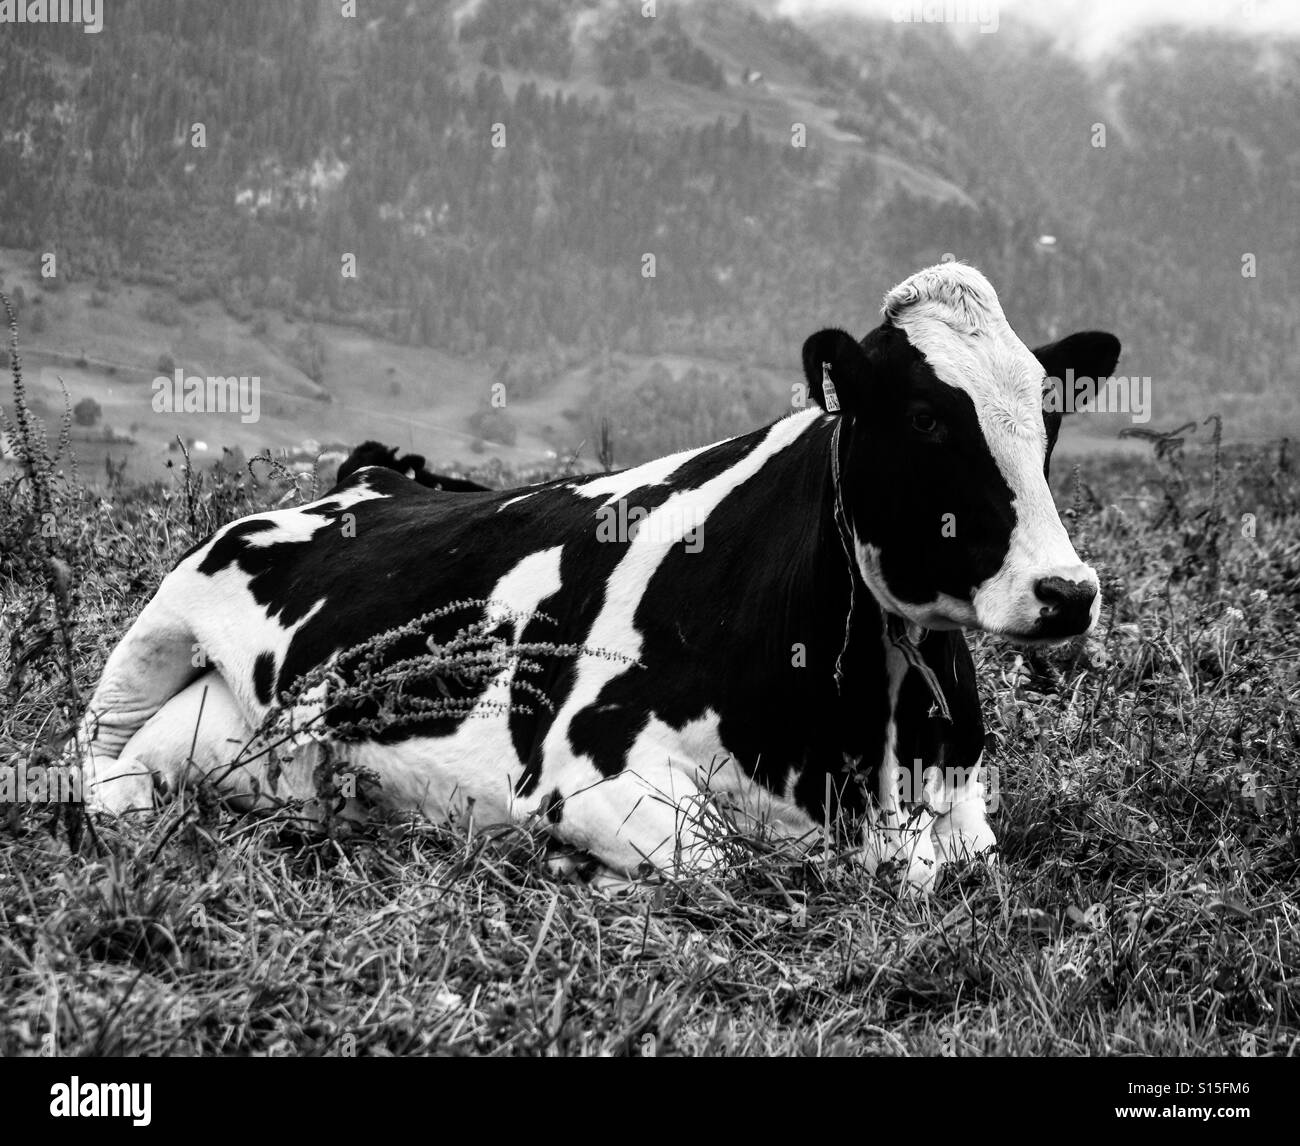 Cow in the mountains - Stock Image